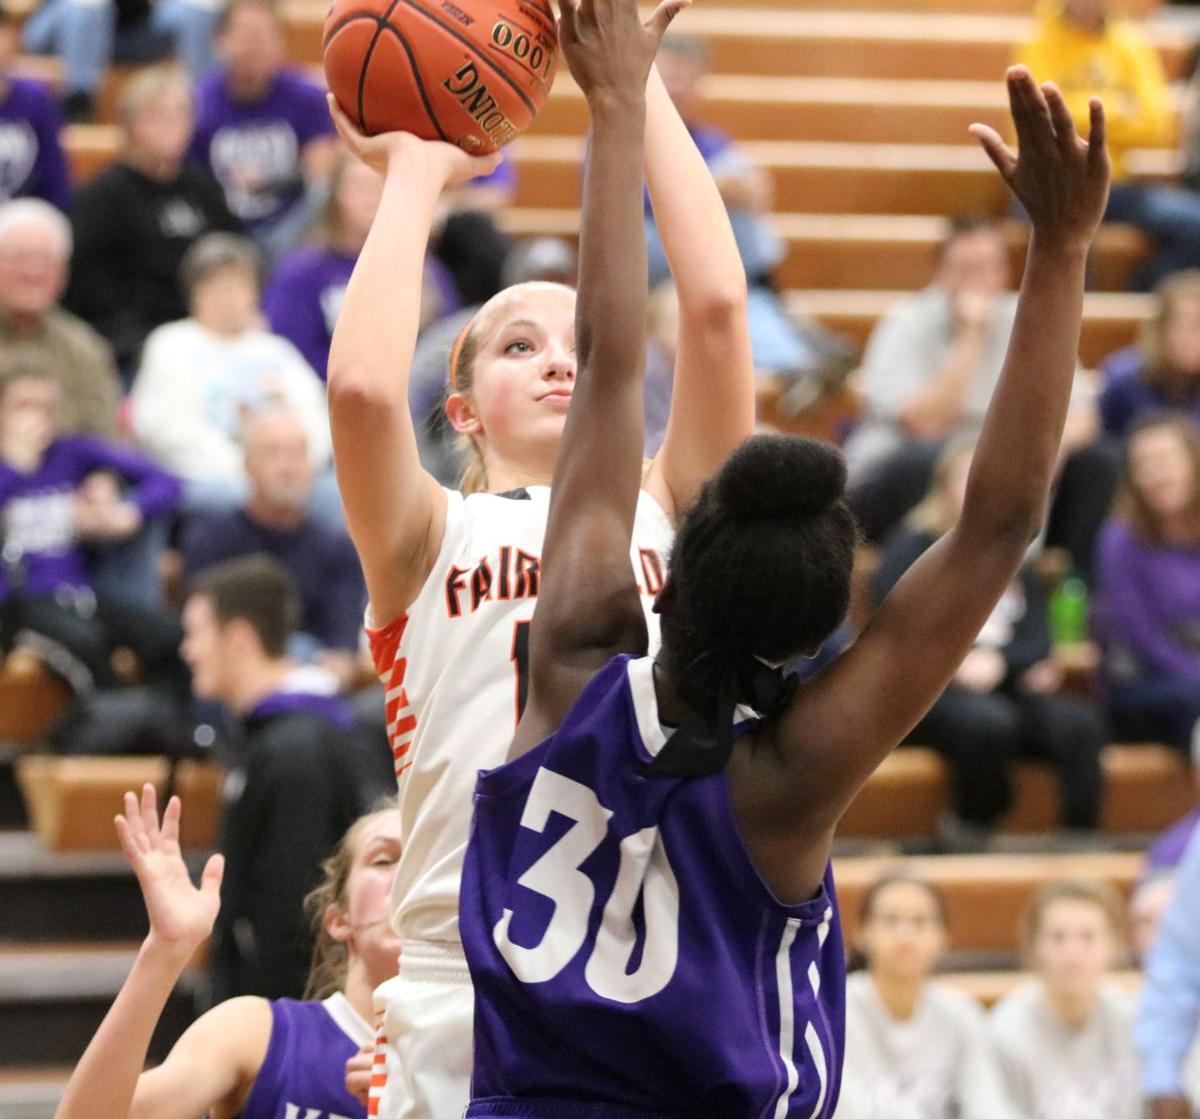 Girls basketball: Keokuk downs Fairfield to take conference lead into break